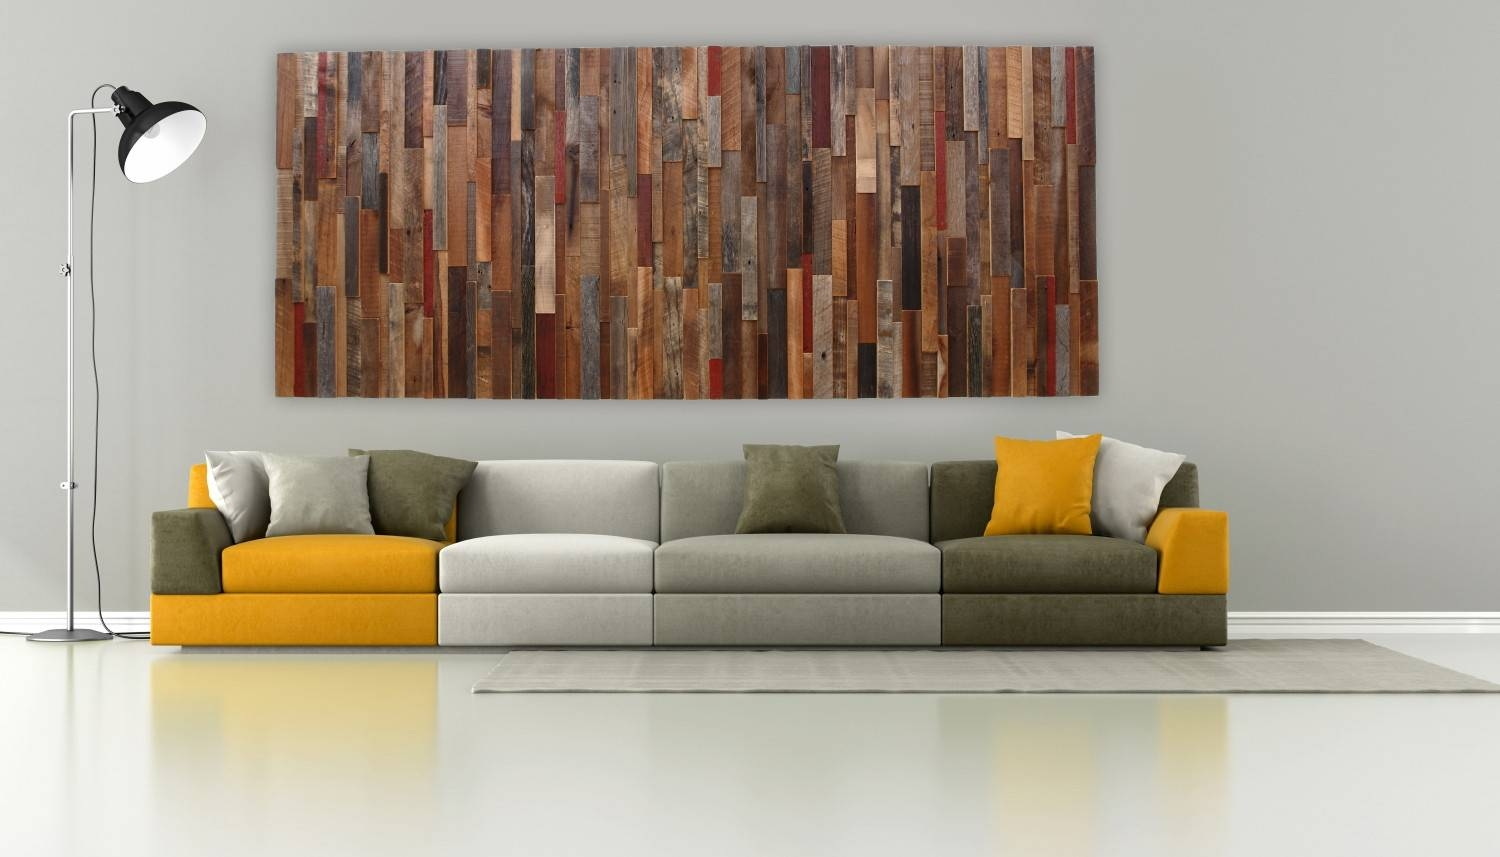 97 Unforgettable Large Wooden Wall Art Pictures Inspirations Home Intended For Current Large Unique Wall Art (View 2 of 20)